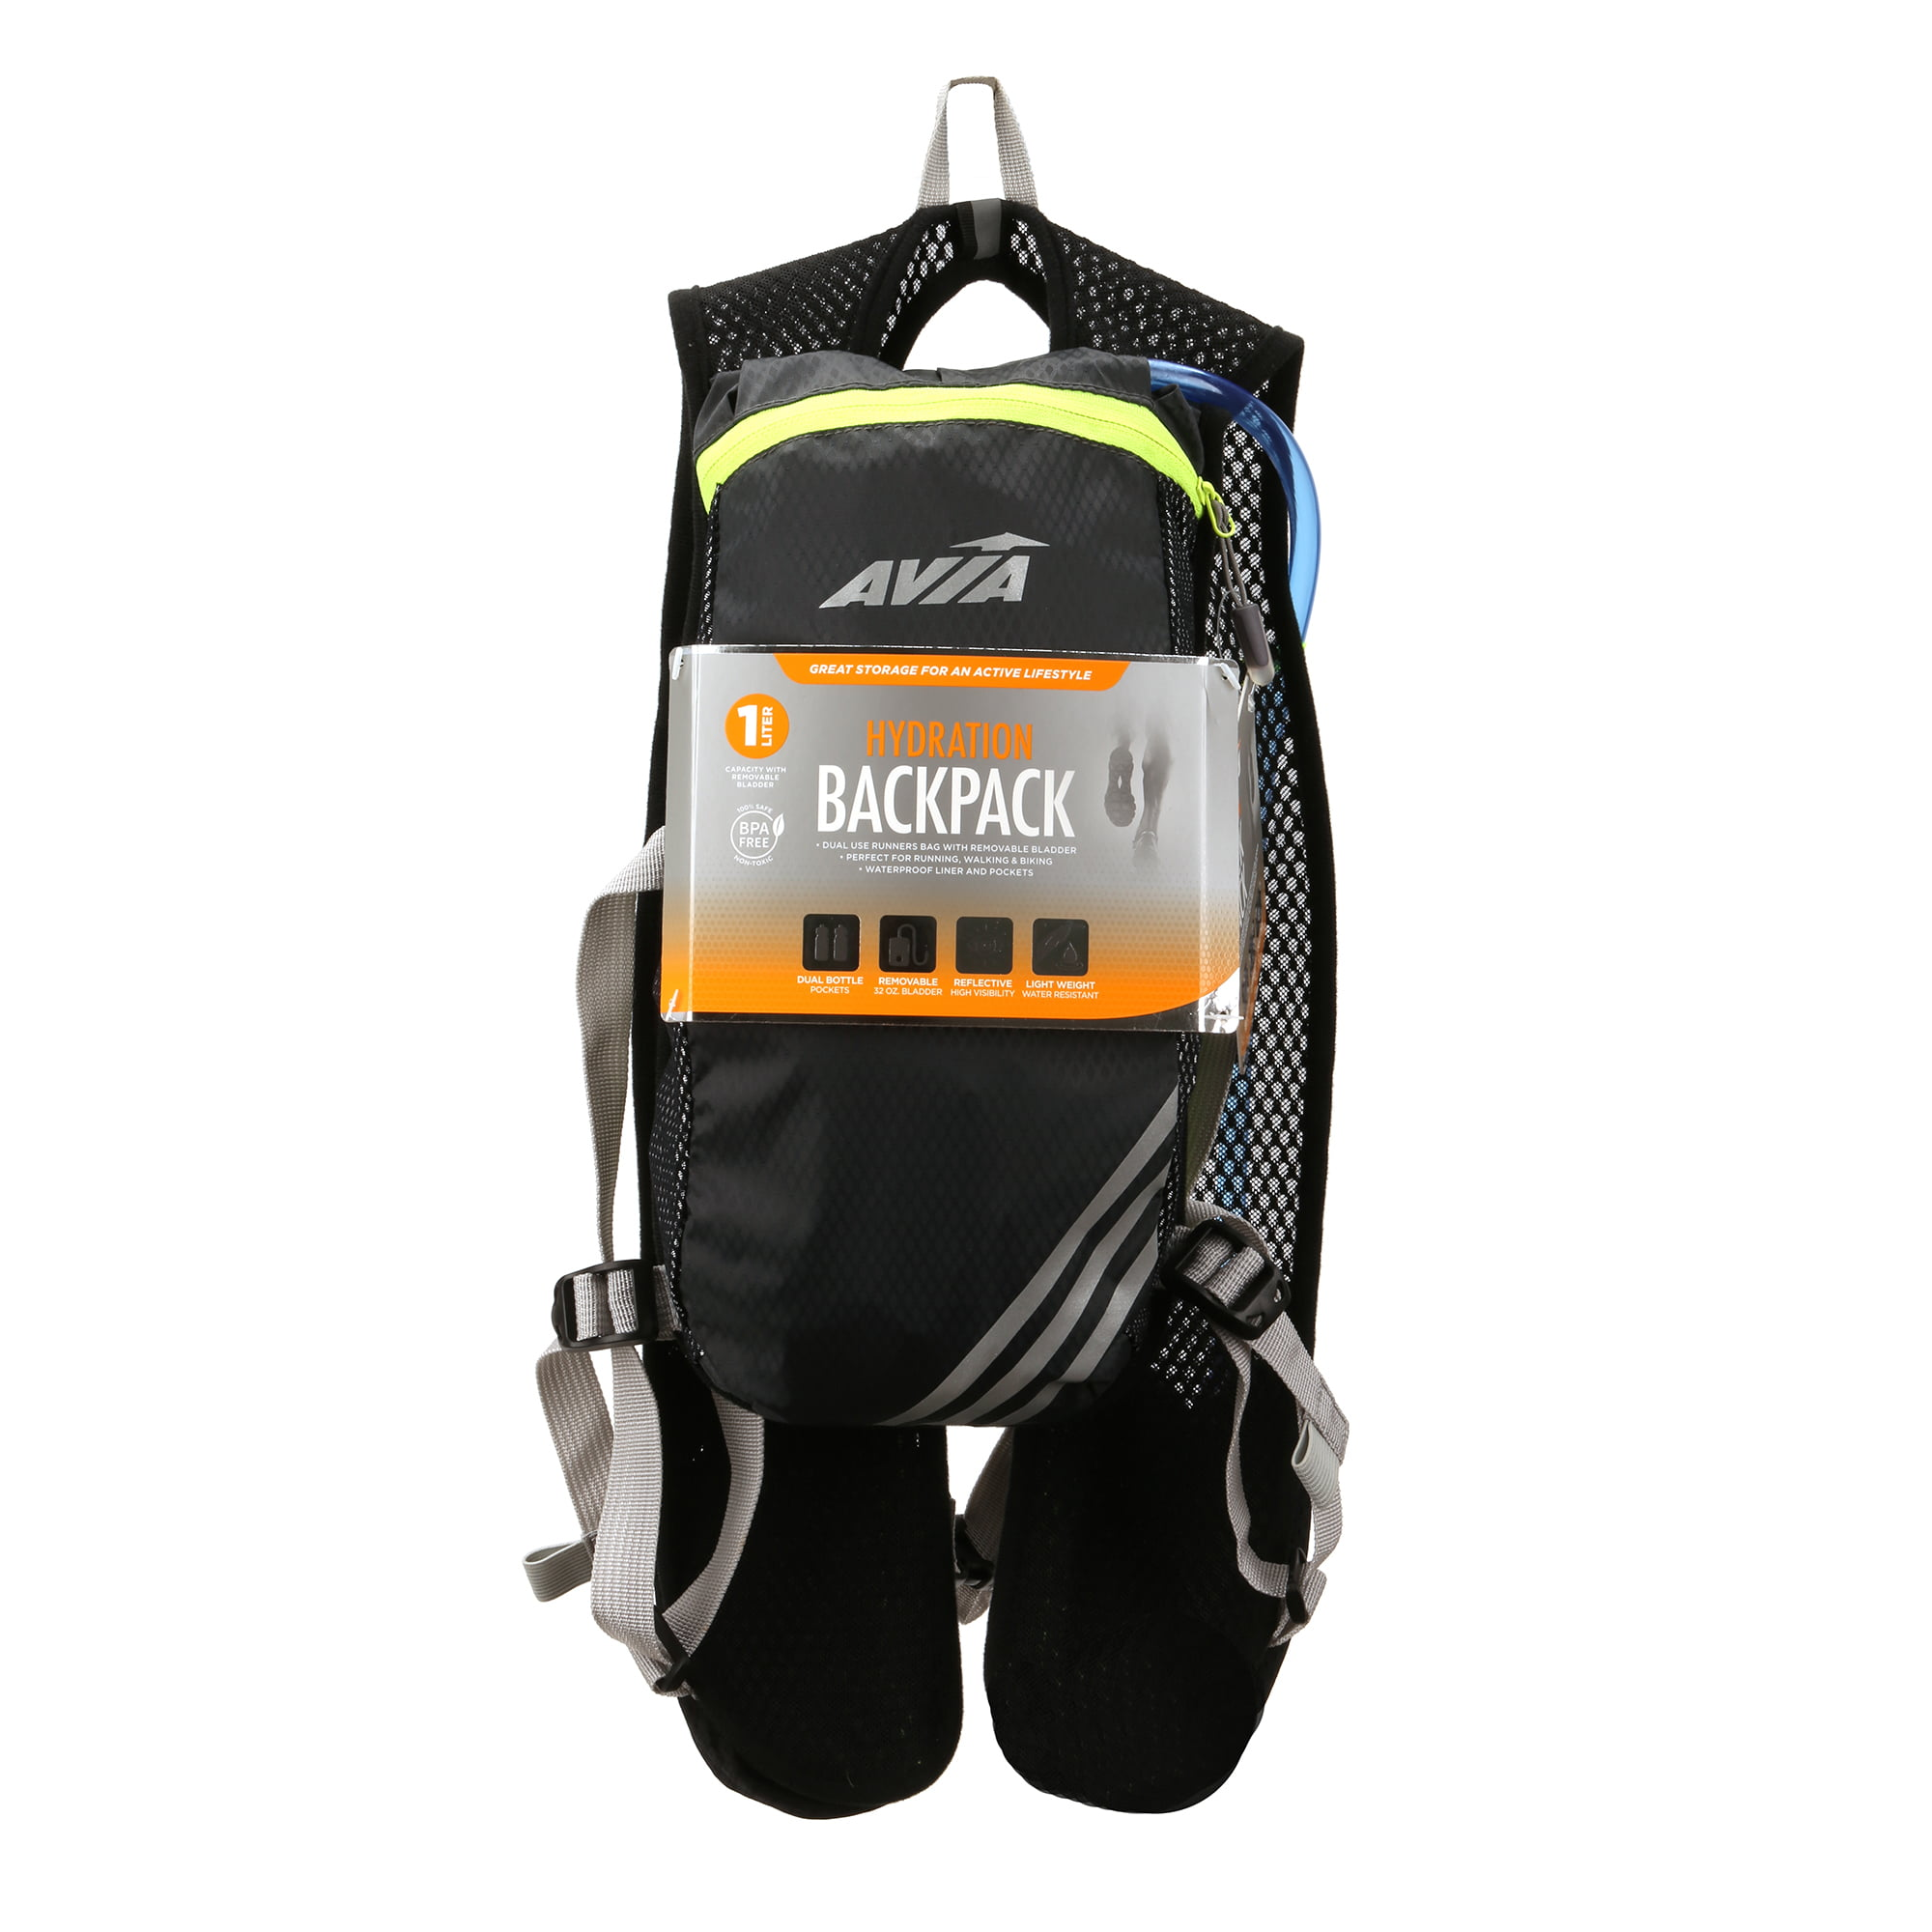 c232b54b42 Hydration Backpack Running Clearance | The Shred Centre